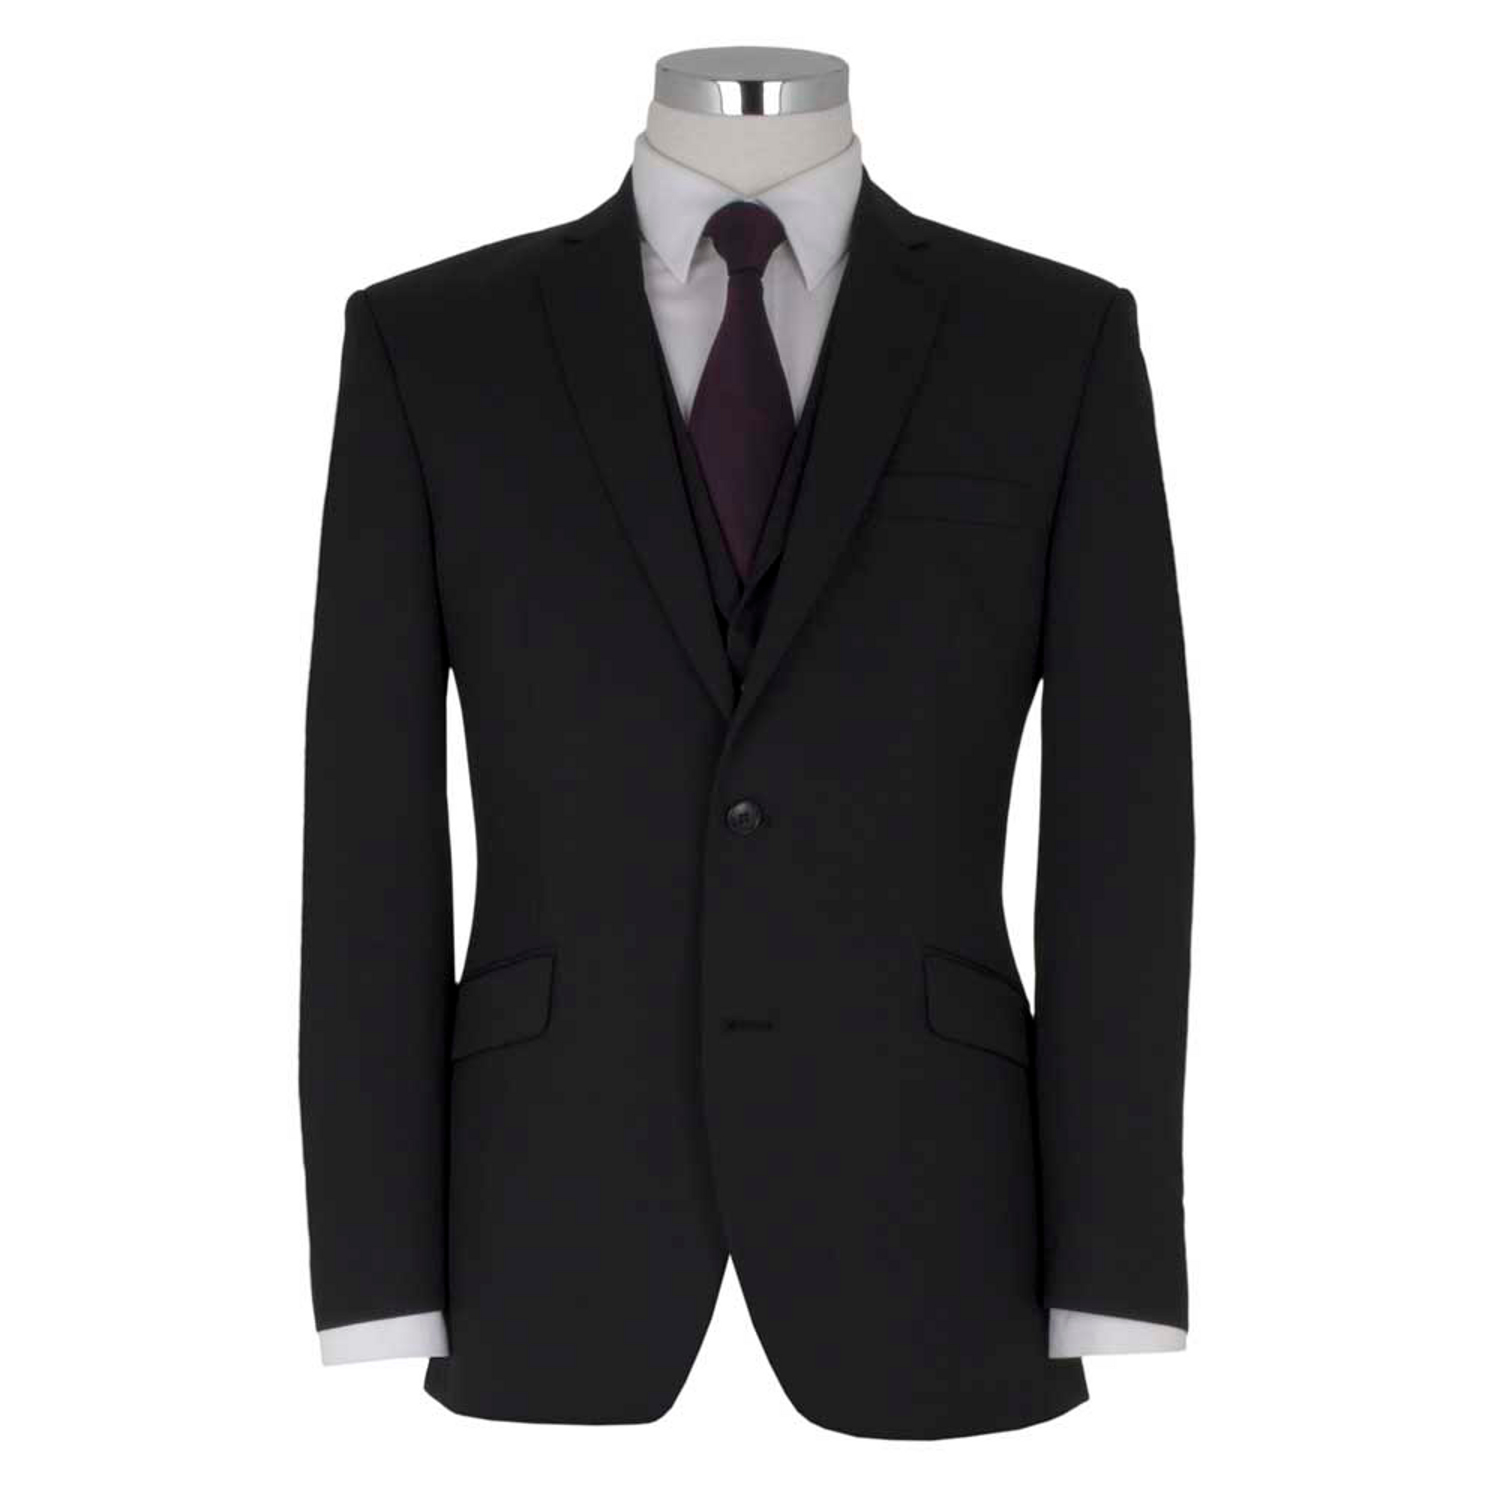 Men's suits by Black Lapel are custom made just for you, from a formal black suit to a traditional 3 piece suit to a modern business suit, you will find them here. You've Activated $25 Off. Use Code At Checkout * Valid for first time purchases only ** Minimum purchases $99 *** Code will apply at checkout.